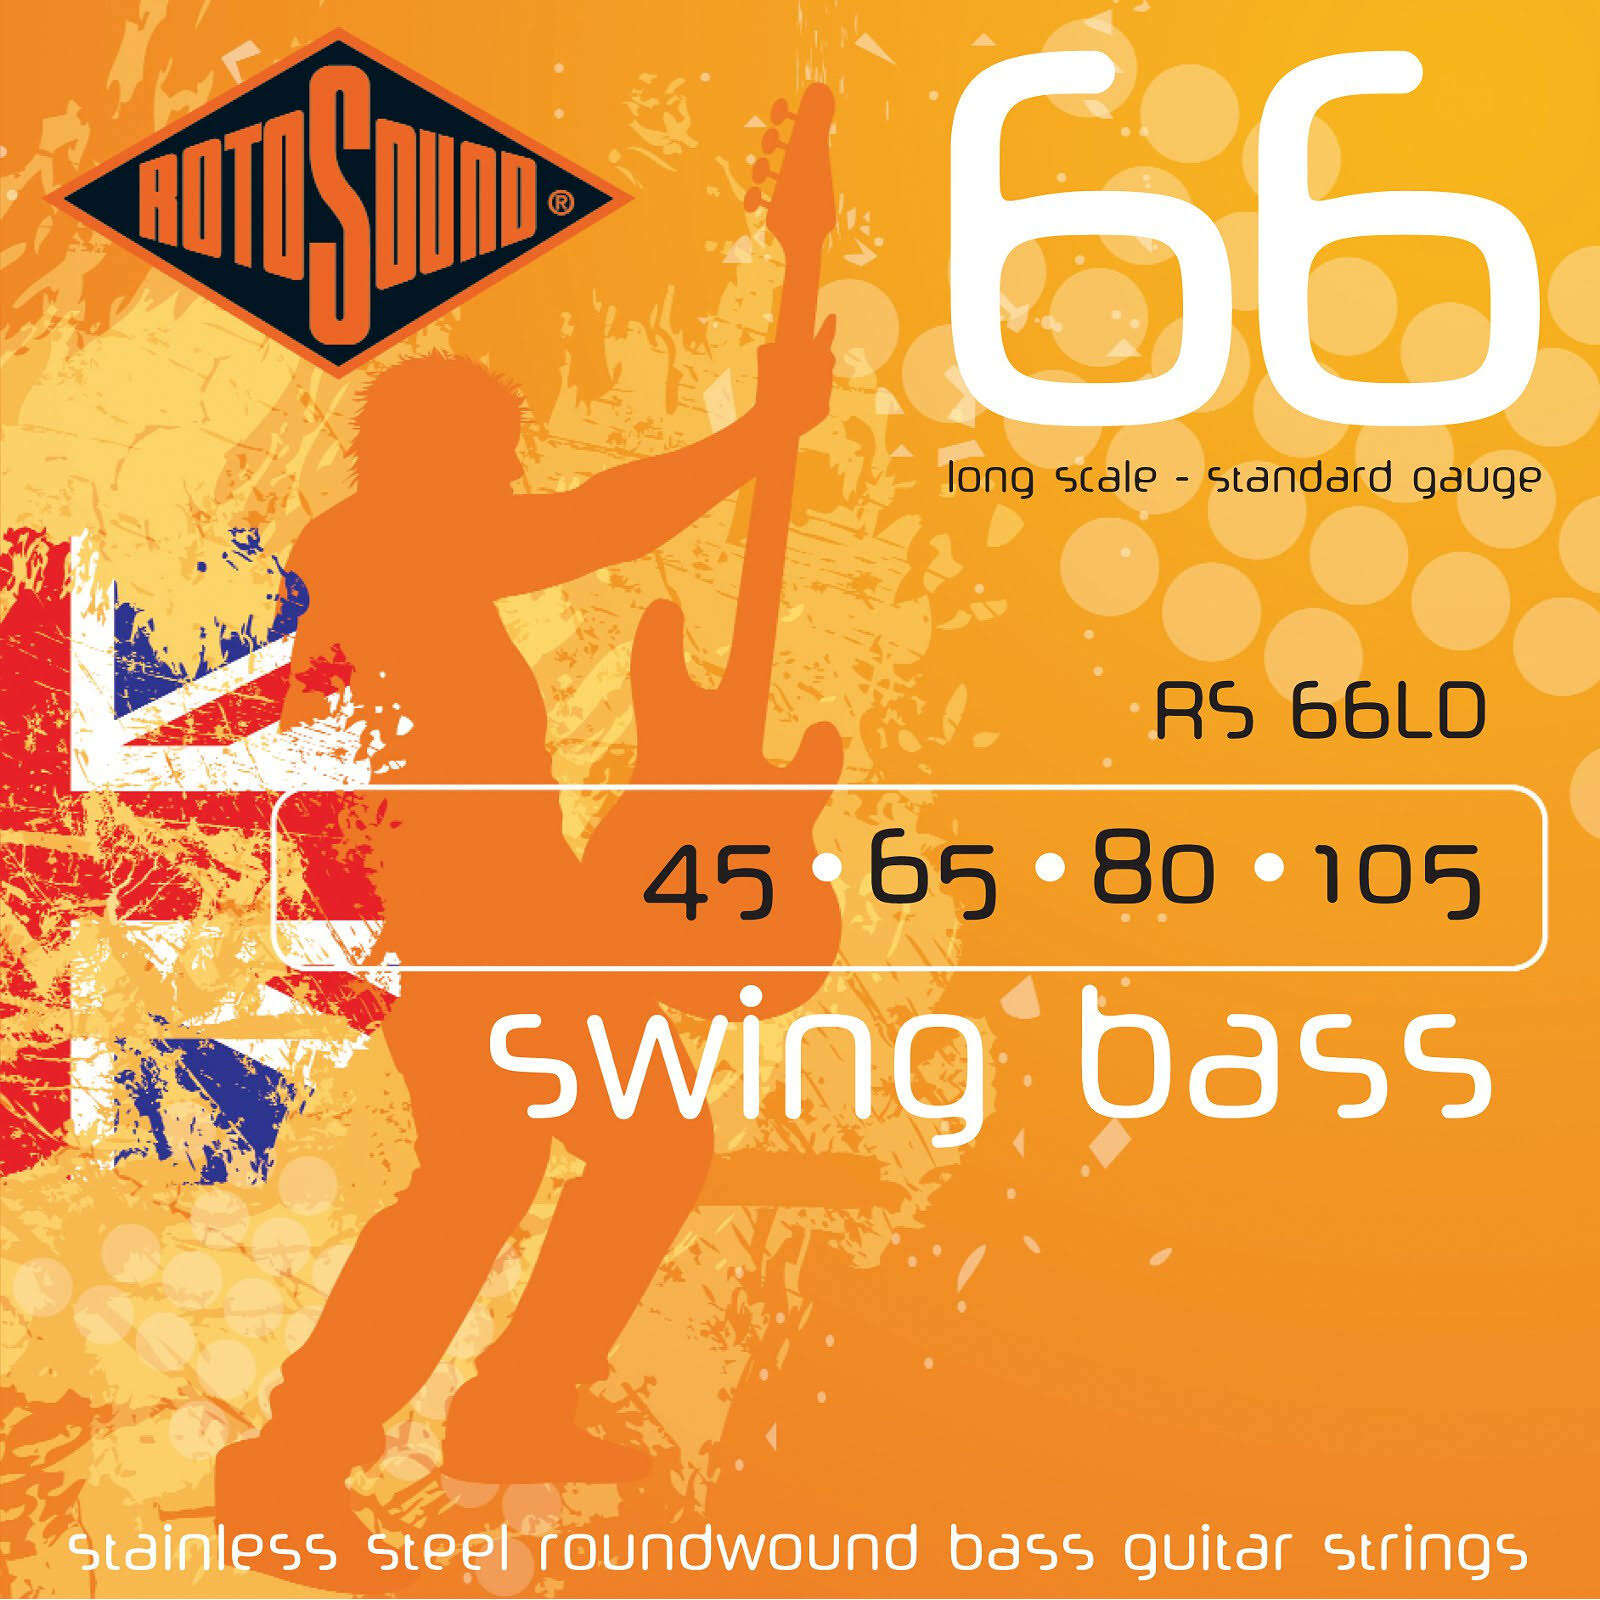 Rotosound Long Scale Swing 66 Bass Guitar Strings